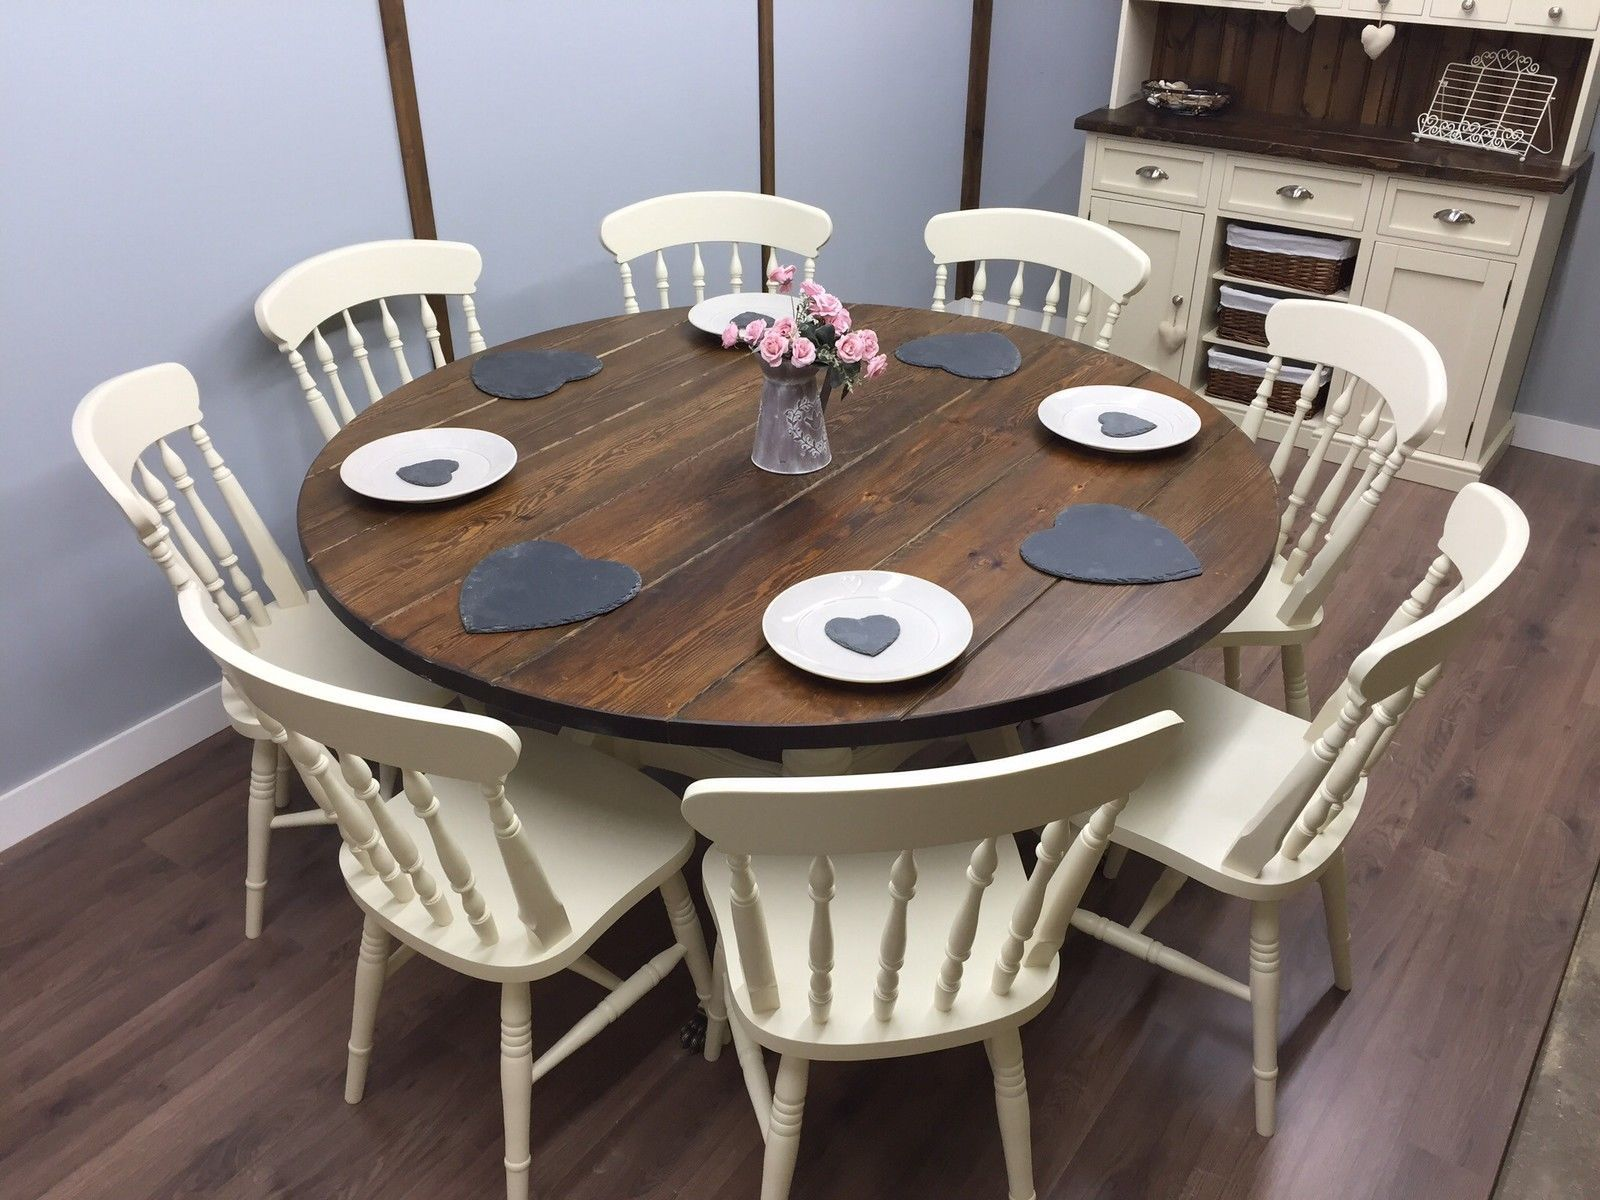 Large Round Farmhouse Table And Chairs 6,8 Seater Shabby